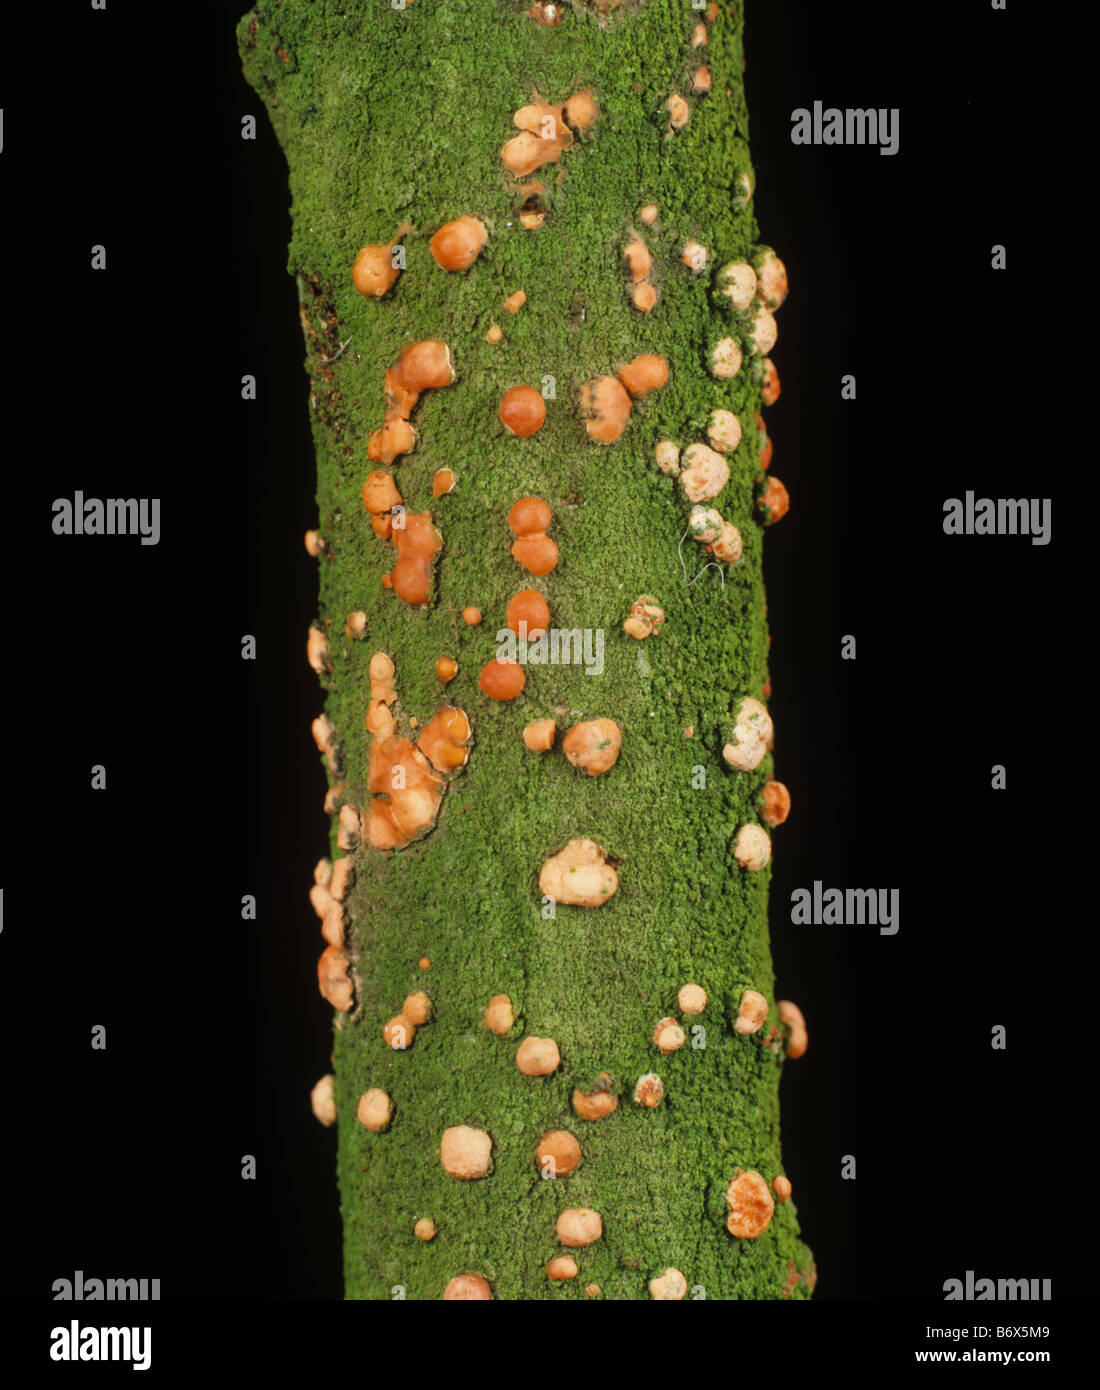 Coral spot Nectria cinnabarina fruiting bodies on dead elm wood - Stock Image